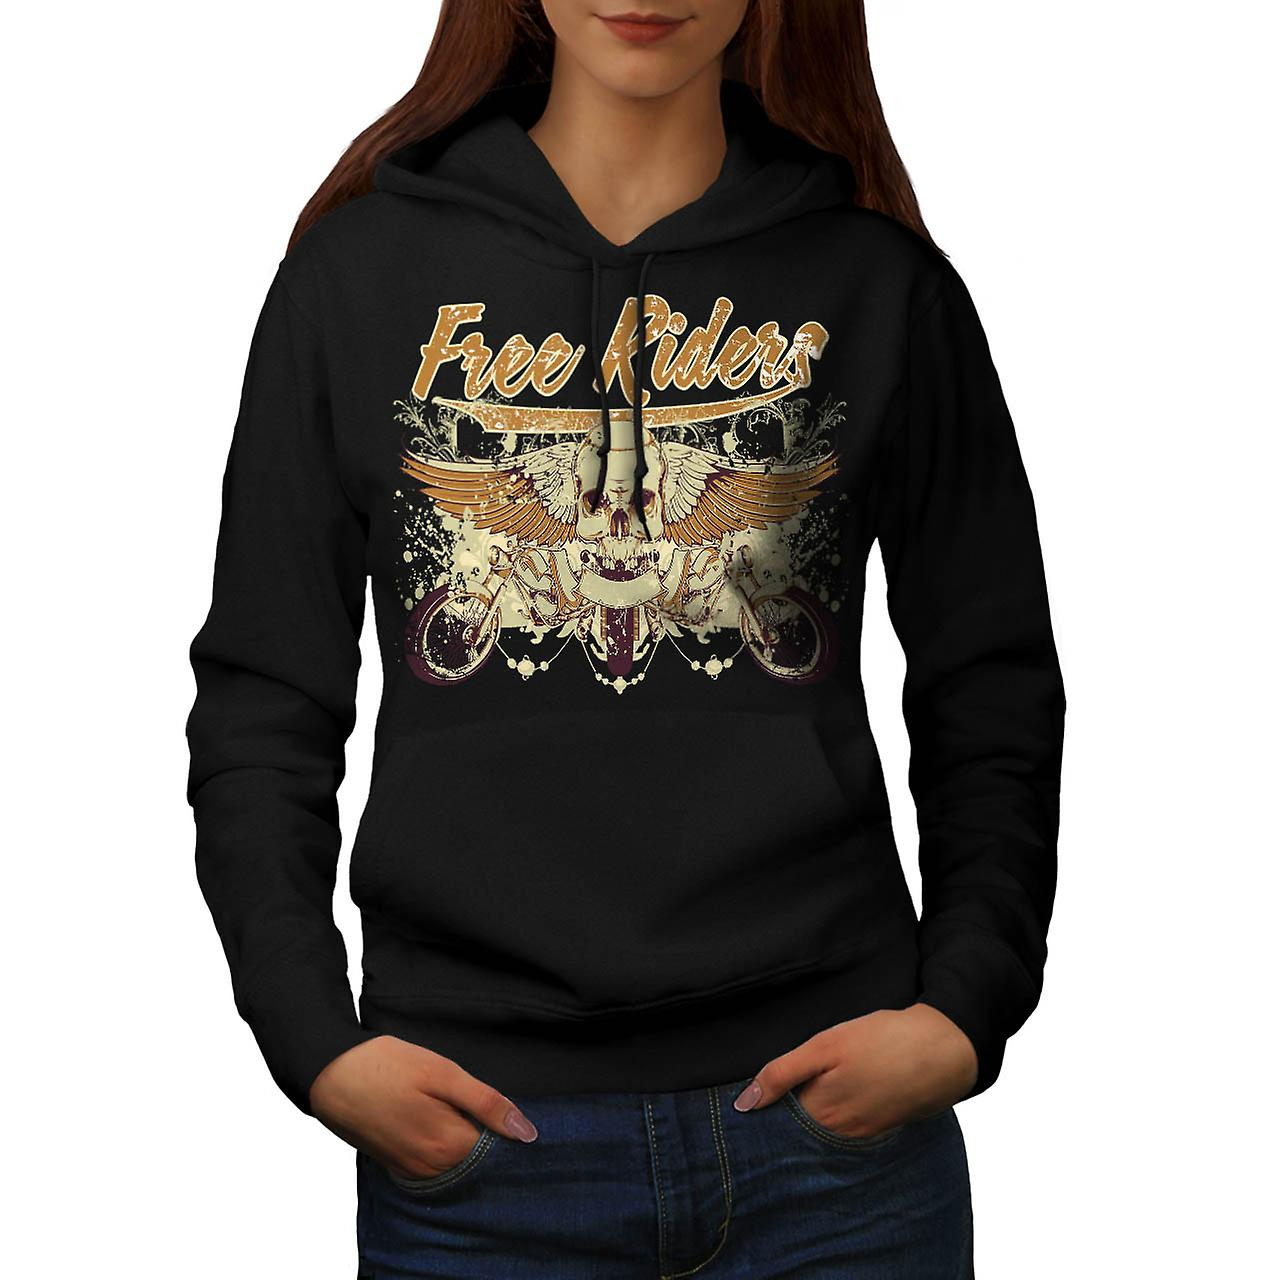 Free Rider Bike Gang Biker Life Women Black Hoodie | Wellcoda